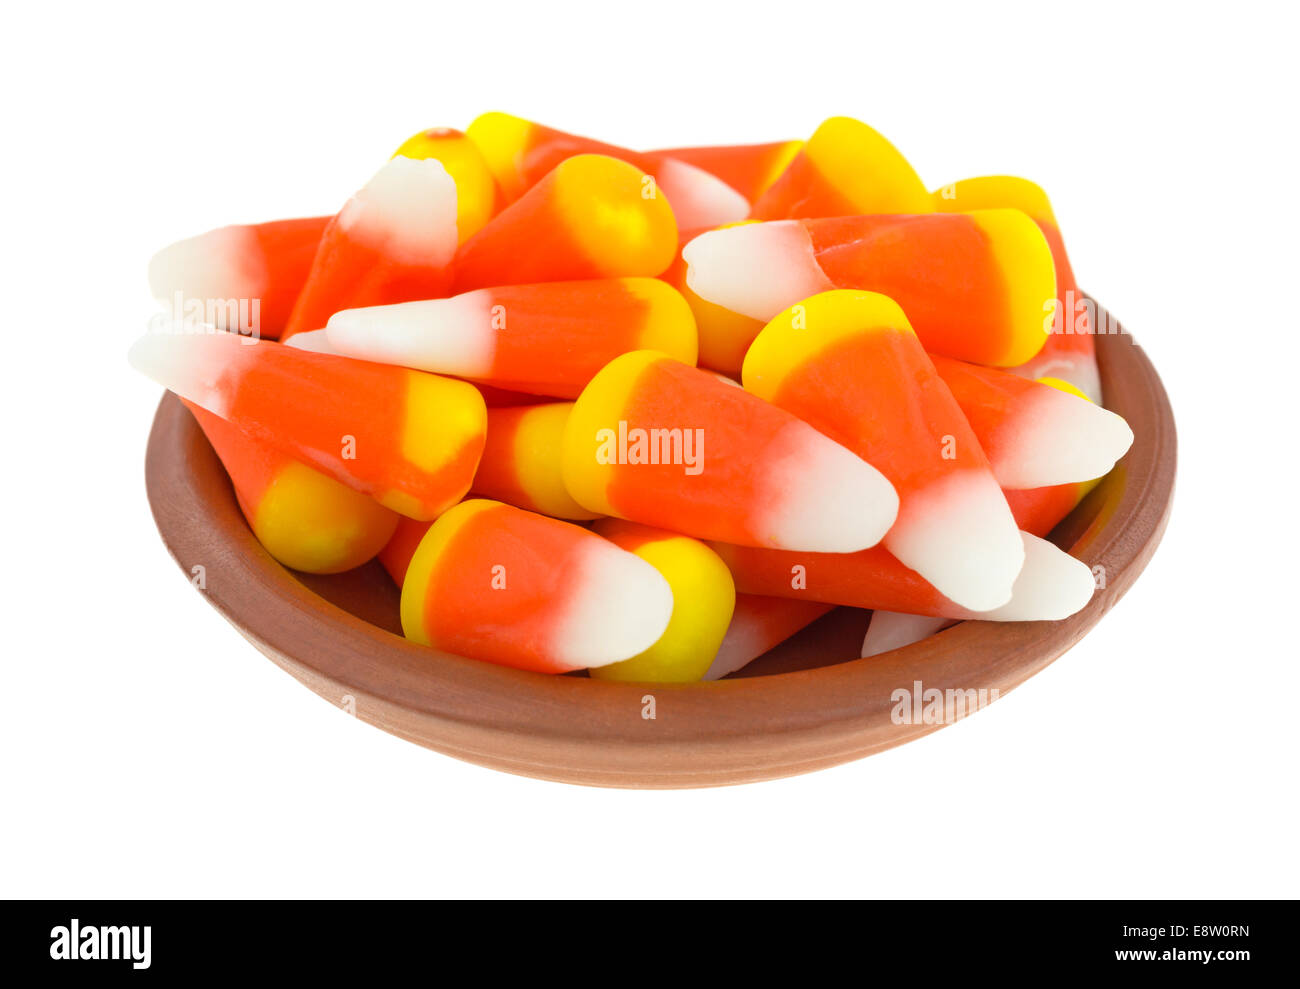 Halloween candy corn kernels in a small bowl on a white background. - Stock Image